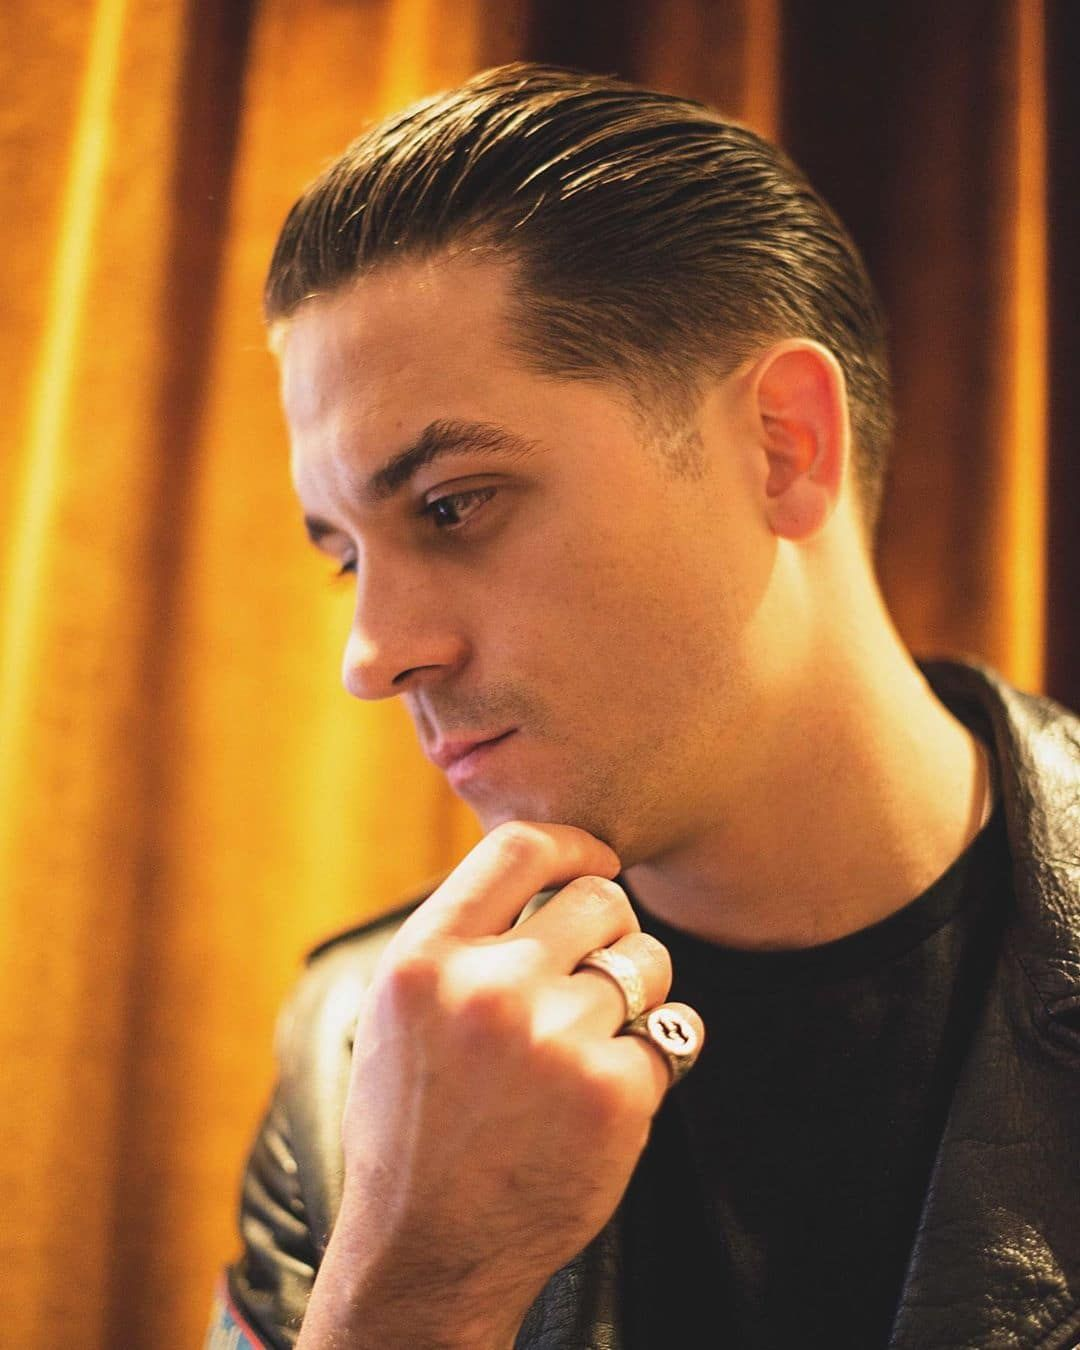 44++ What kind of haircut does g eazy have info